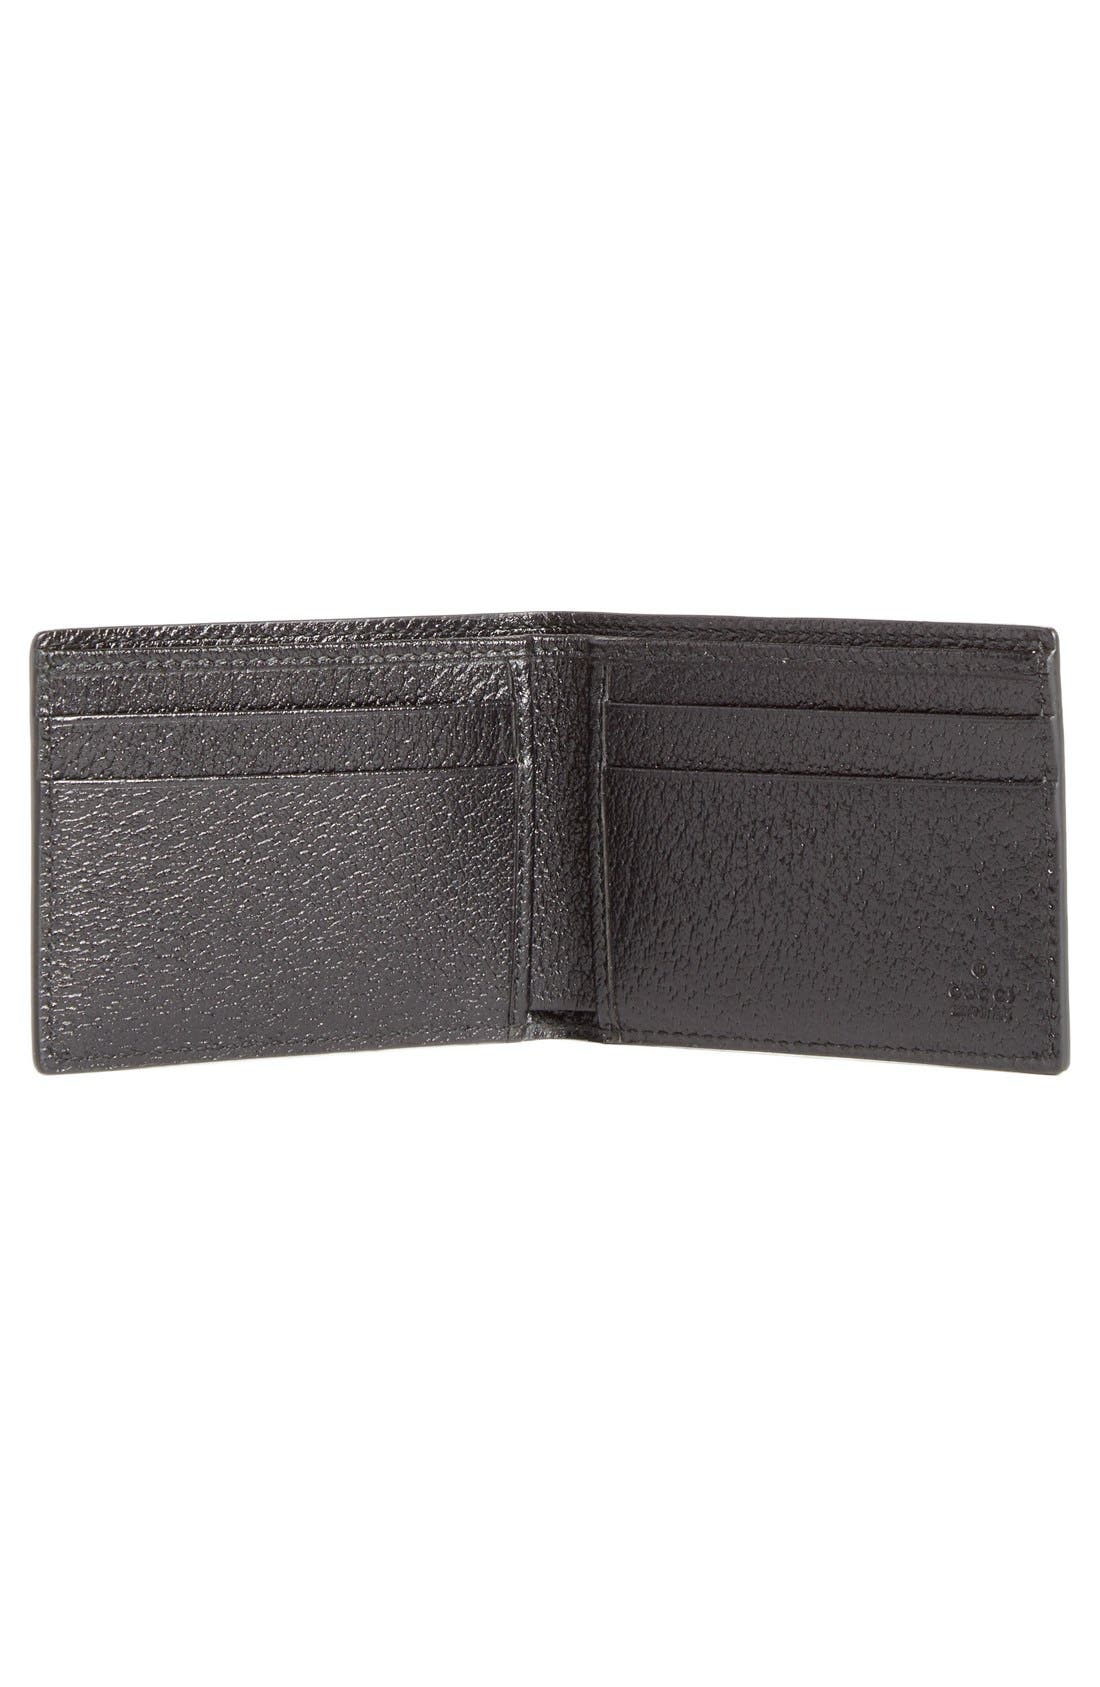 Marmont Leather Wallet,                             Alternate thumbnail 8, color,